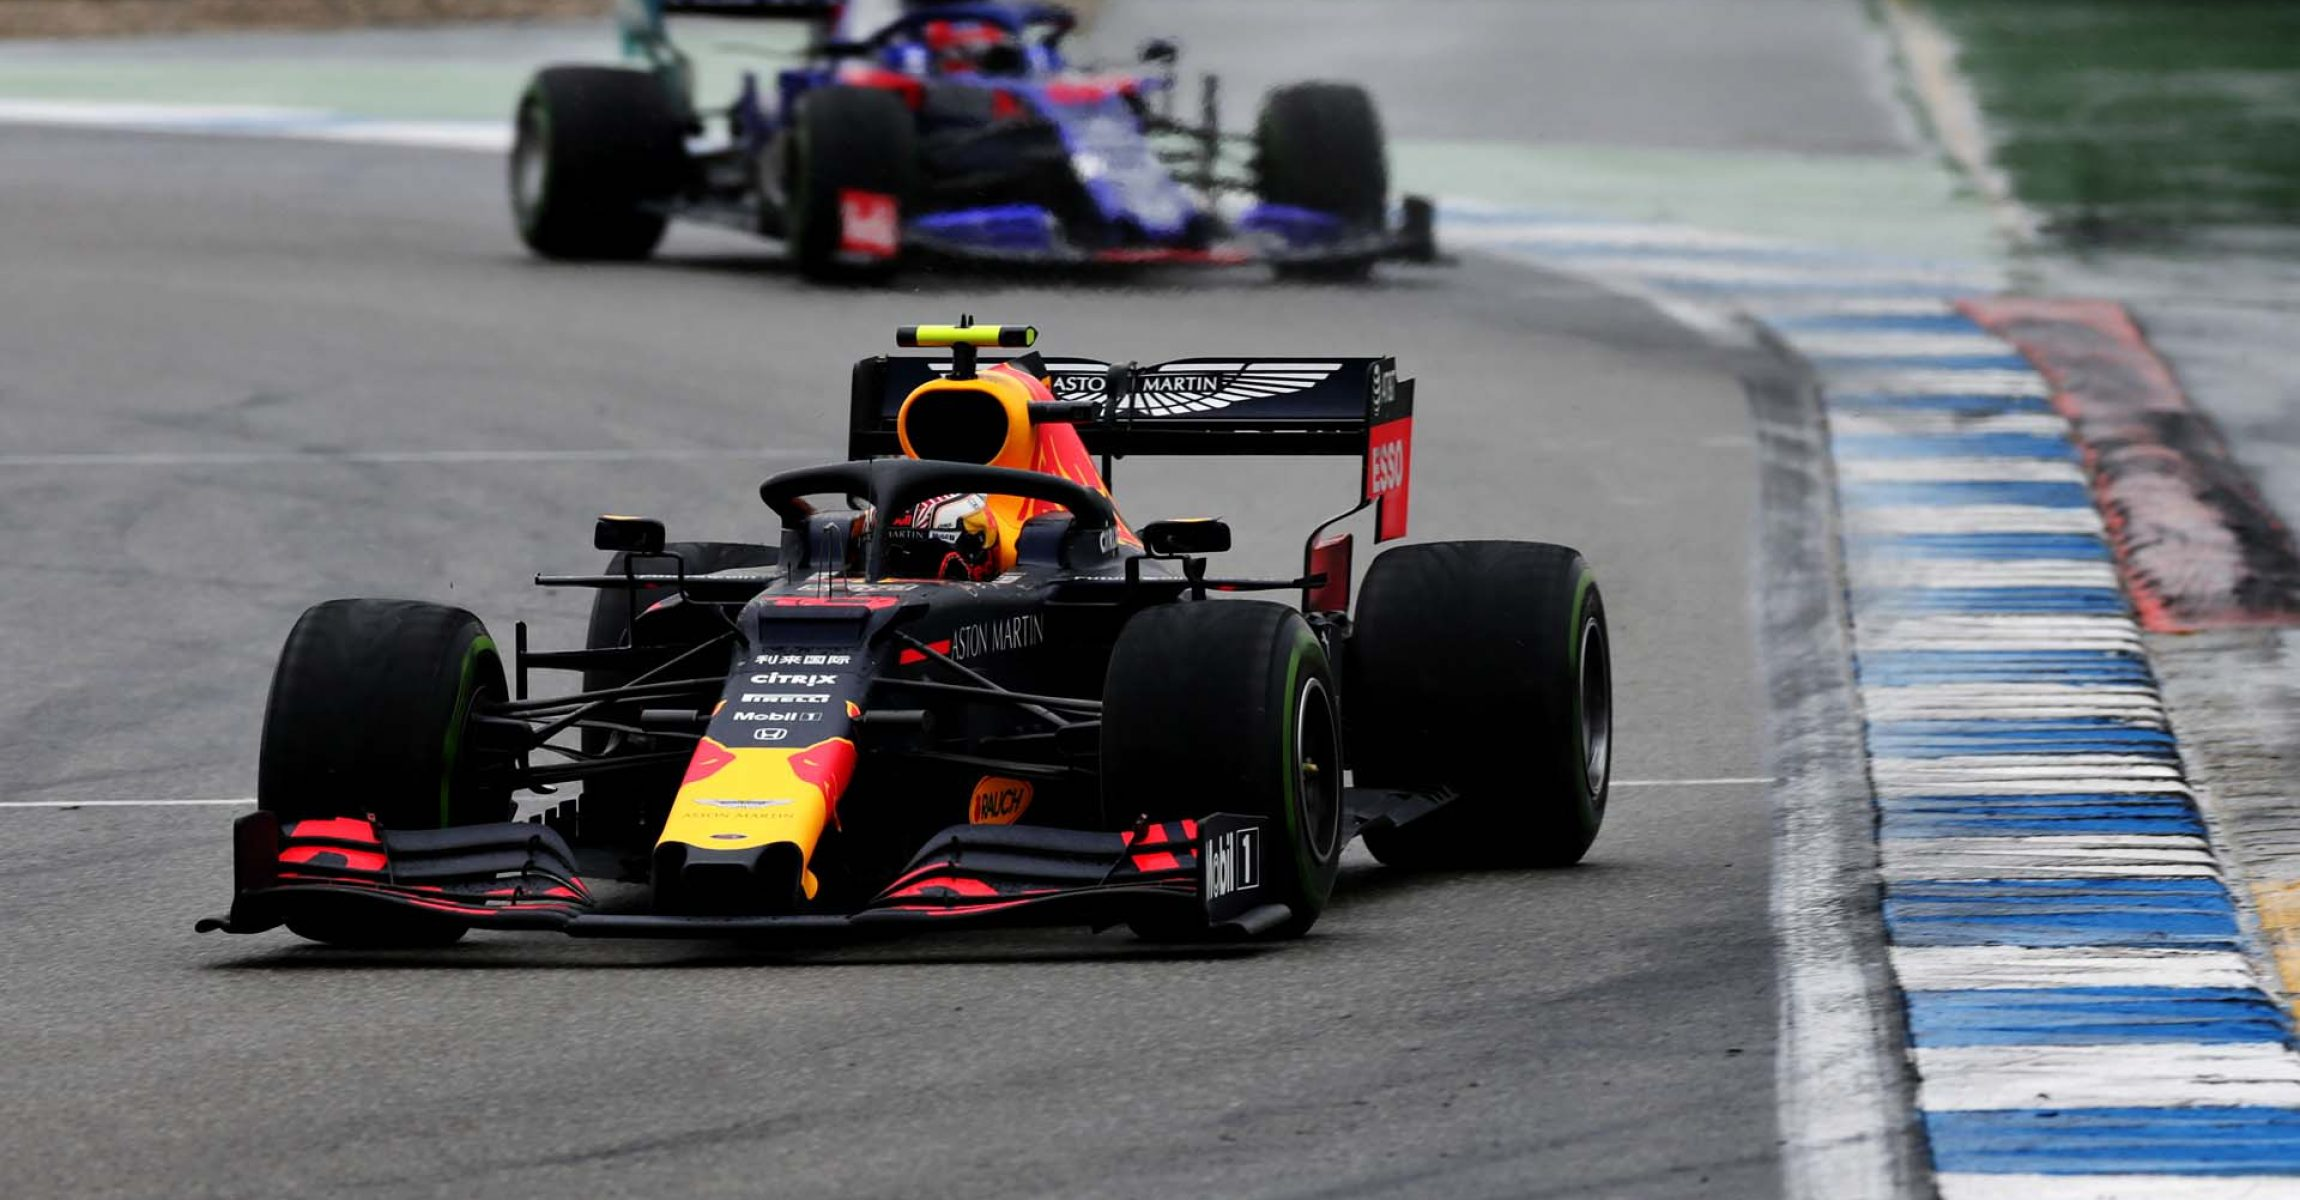 HOCKENHEIM, GERMANY - JULY 28: Pierre Gasly of France driving the (10) Aston Martin Red Bull Racing RB15 leads Daniil Kvyat driving the (26) Scuderia Toro Rosso STR14 Honda on track during the F1 Grand Prix of Germany at Hockenheimring on July 28, 2019 in Hockenheim, Germany. (Photo by Peter Fox/Getty Images) // Getty Images / Red Bull Content Pool  // AP-2139Q439H2111 // Usage for editorial use only // Please go to www.redbullcontentpool.com for further information. //